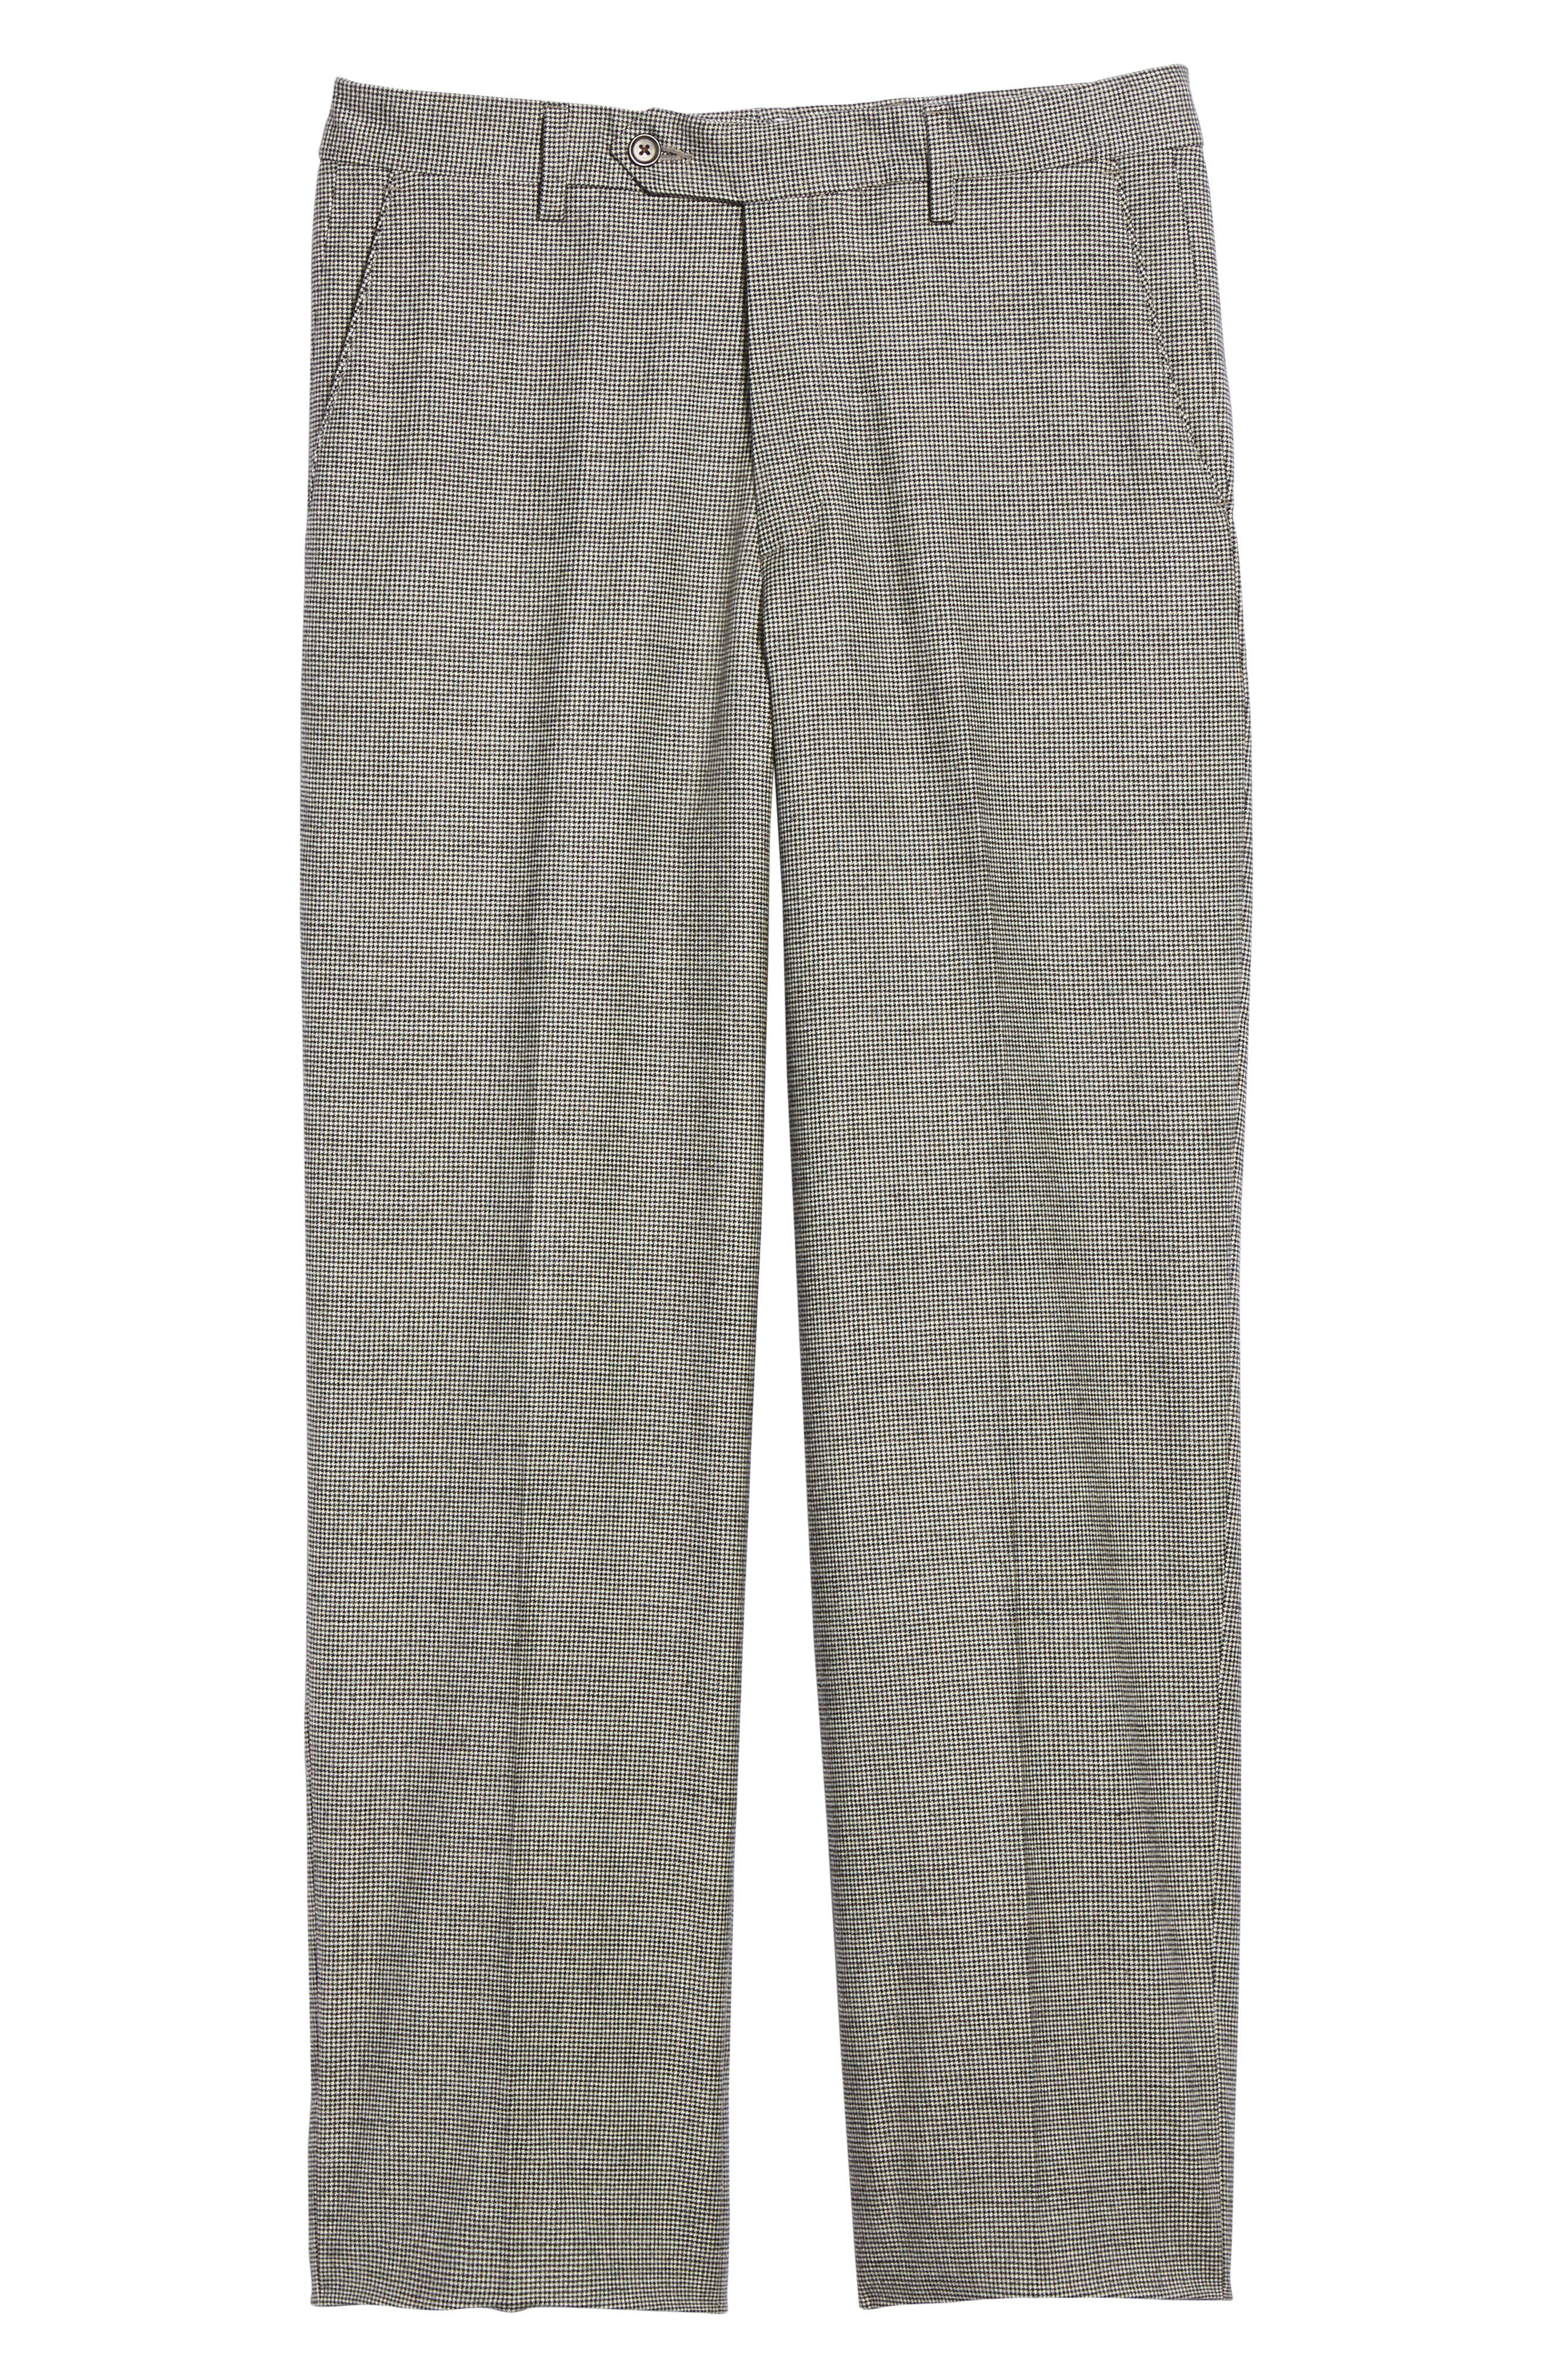 Flat Front Stretch Plaid Houndstooth Trousers,                             Alternate thumbnail 6, color,                             BLACK/ WHITE